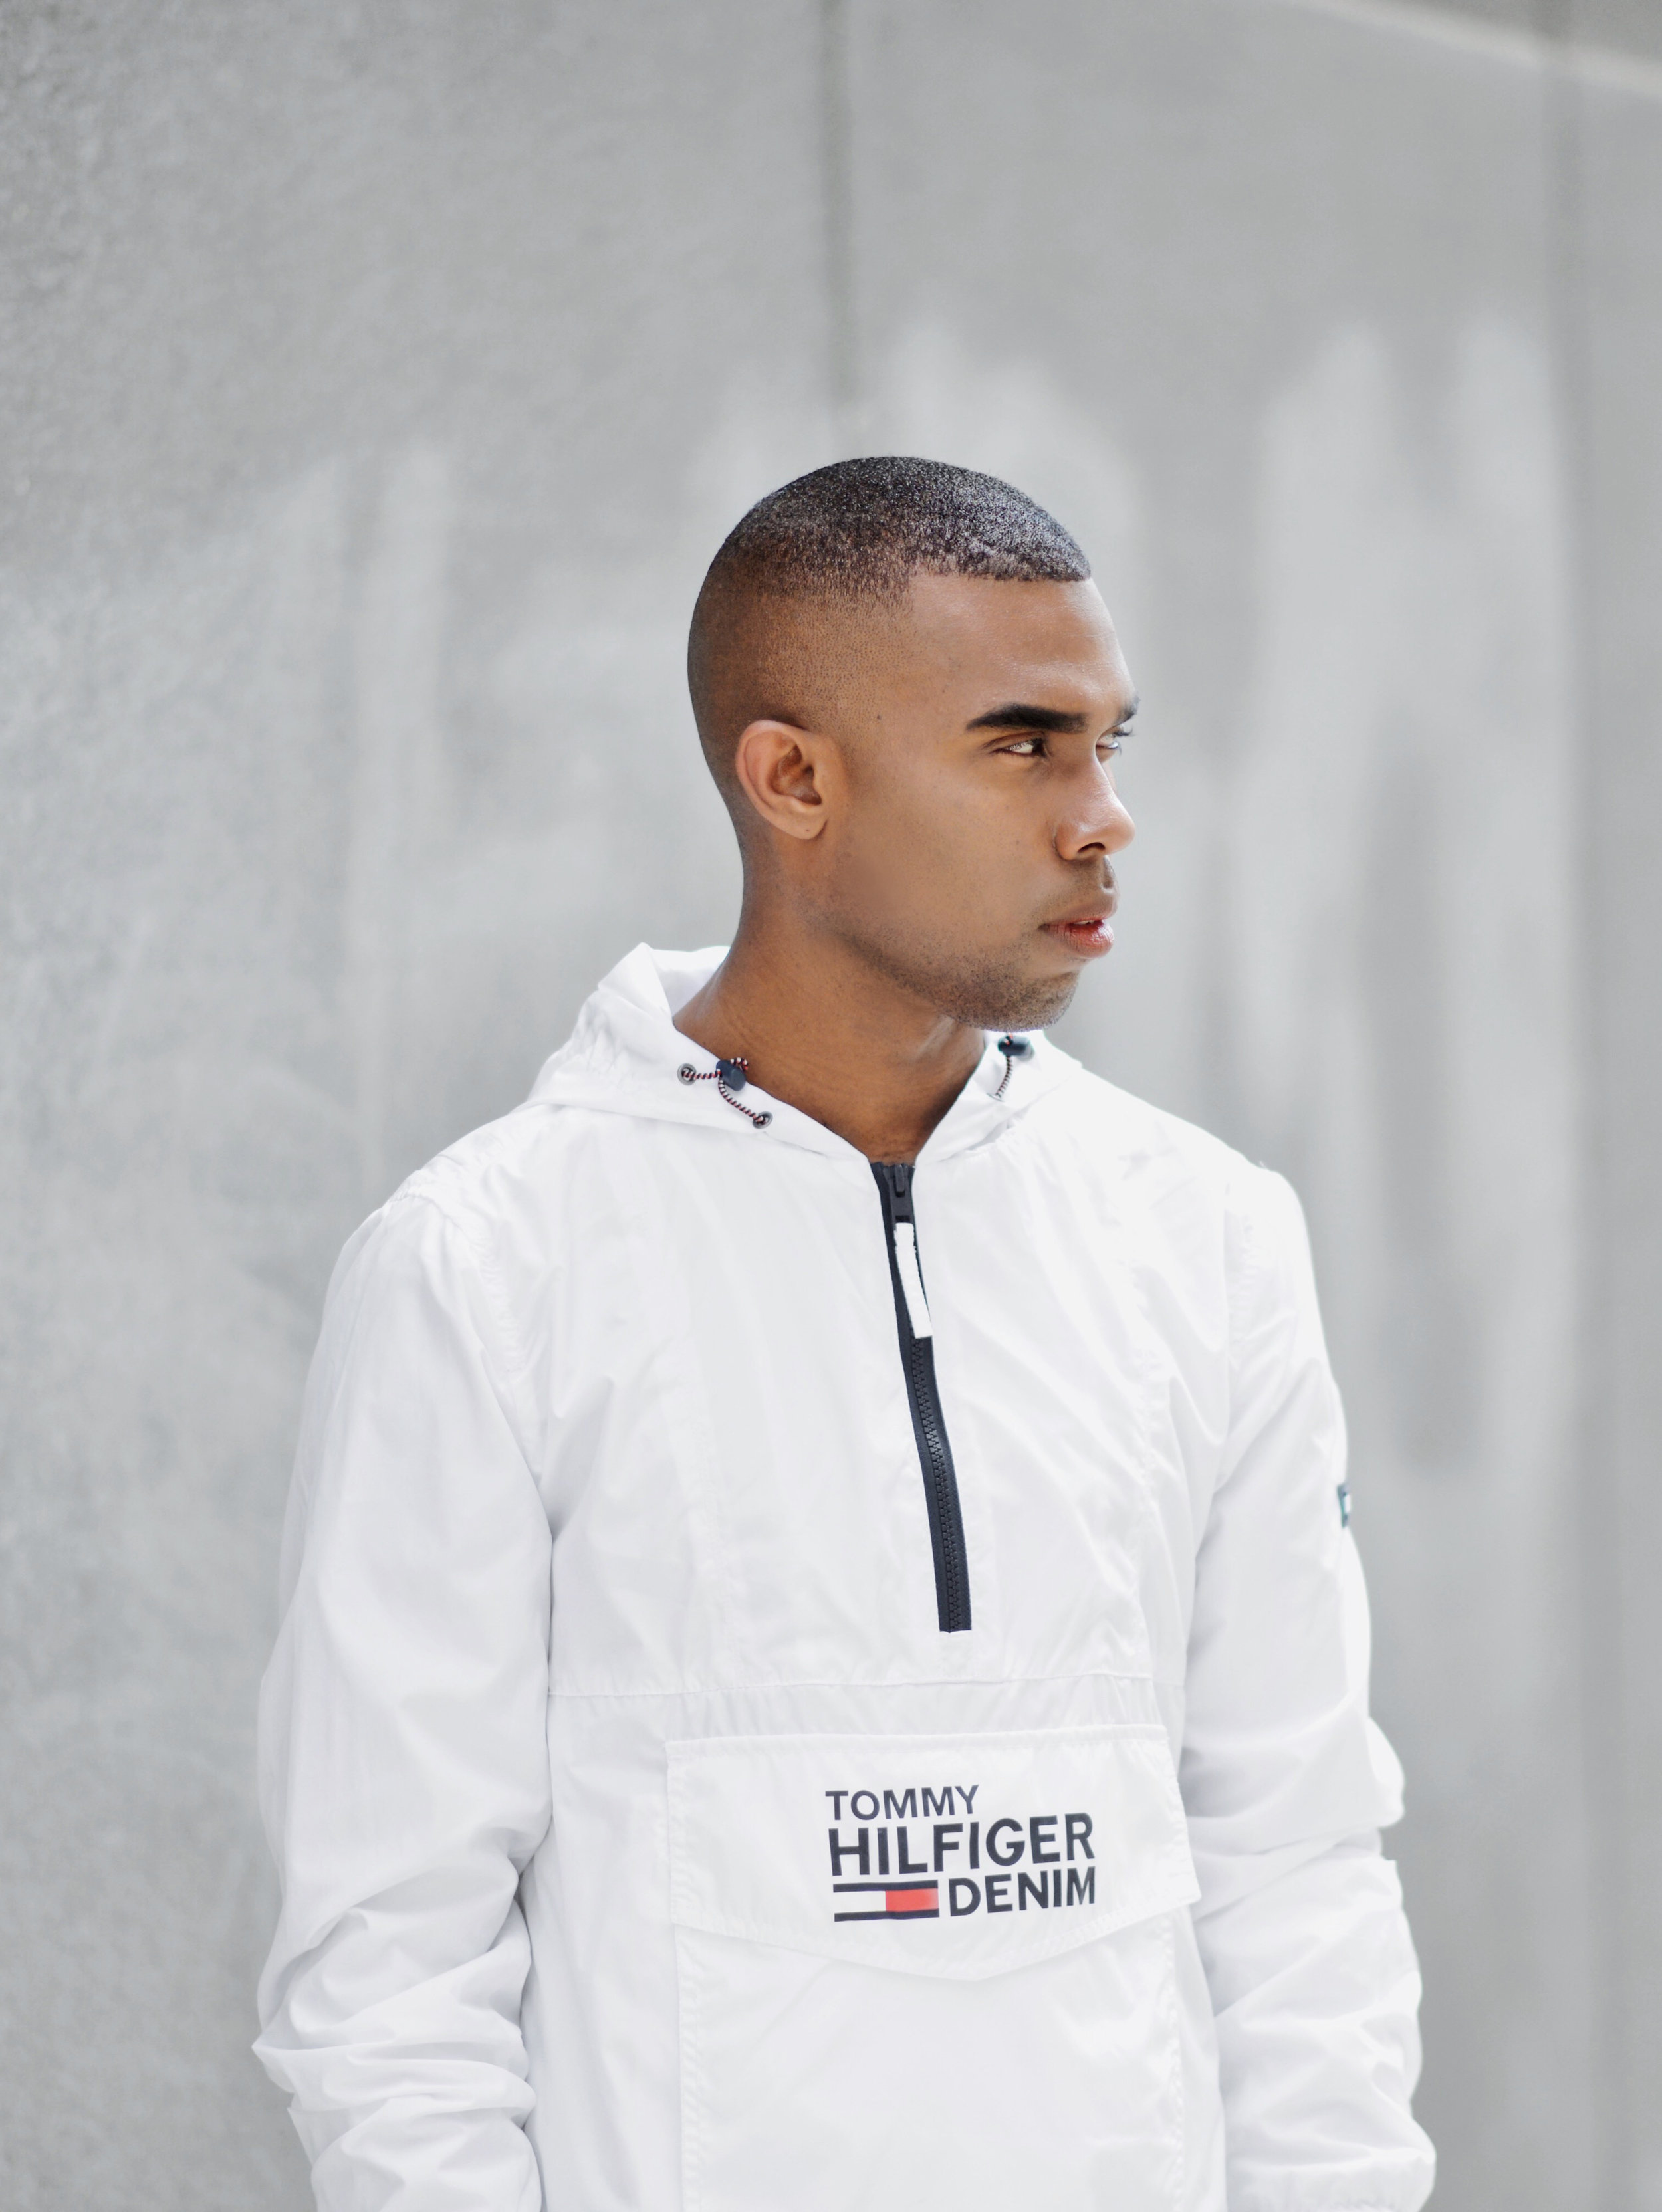 The-Look-Principle-Urban-Outfitters-Tommy-Hilfiger-Collection